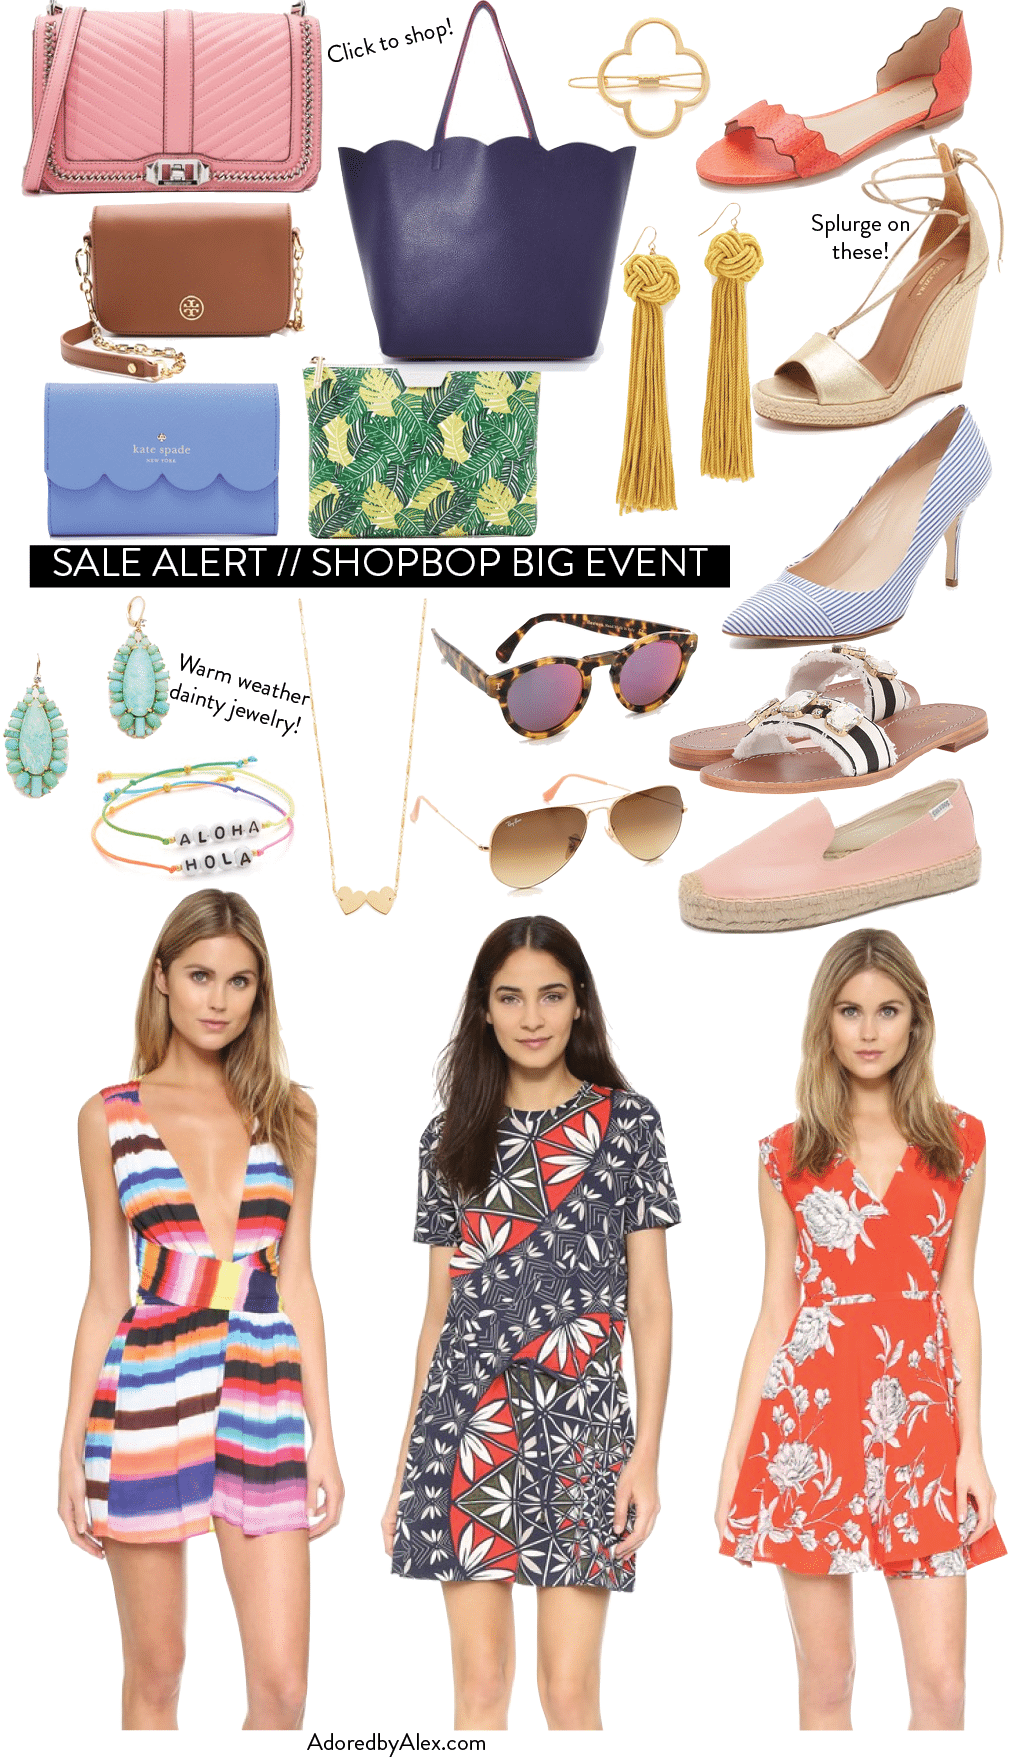 Shopbop.com Big Event Sale round-up